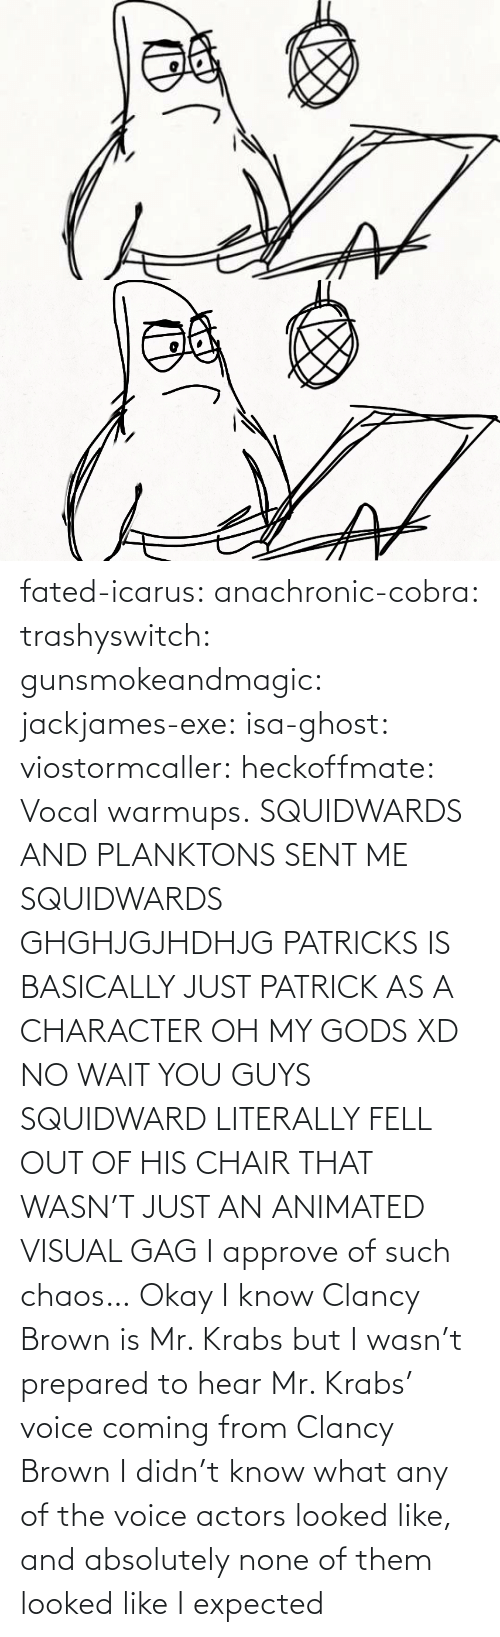 His: fated-icarus:  anachronic-cobra: trashyswitch:  gunsmokeandmagic:  jackjames-exe:  isa-ghost:   viostormcaller:  heckoffmate: Vocal warmups. SQUIDWARDS AND PLANKTONS SENT ME  SQUIDWARDS GHGHJGJHDHJG   PATRICKS IS BASICALLY JUST PATRICK AS A CHARACTER OH MY GODS XD   NO WAIT YOU GUYS SQUIDWARD LITERALLY FELL OUT OF HIS CHAIR THAT WASN'T JUST AN ANIMATED VISUAL GAG    I approve of such chaos…    Okay I know Clancy Brown is Mr. Krabs but I wasn't prepared to hear Mr. Krabs' voice coming from Clancy Brown    I didn't know what any of the voice actors looked like, and absolutely none of them looked like I expected